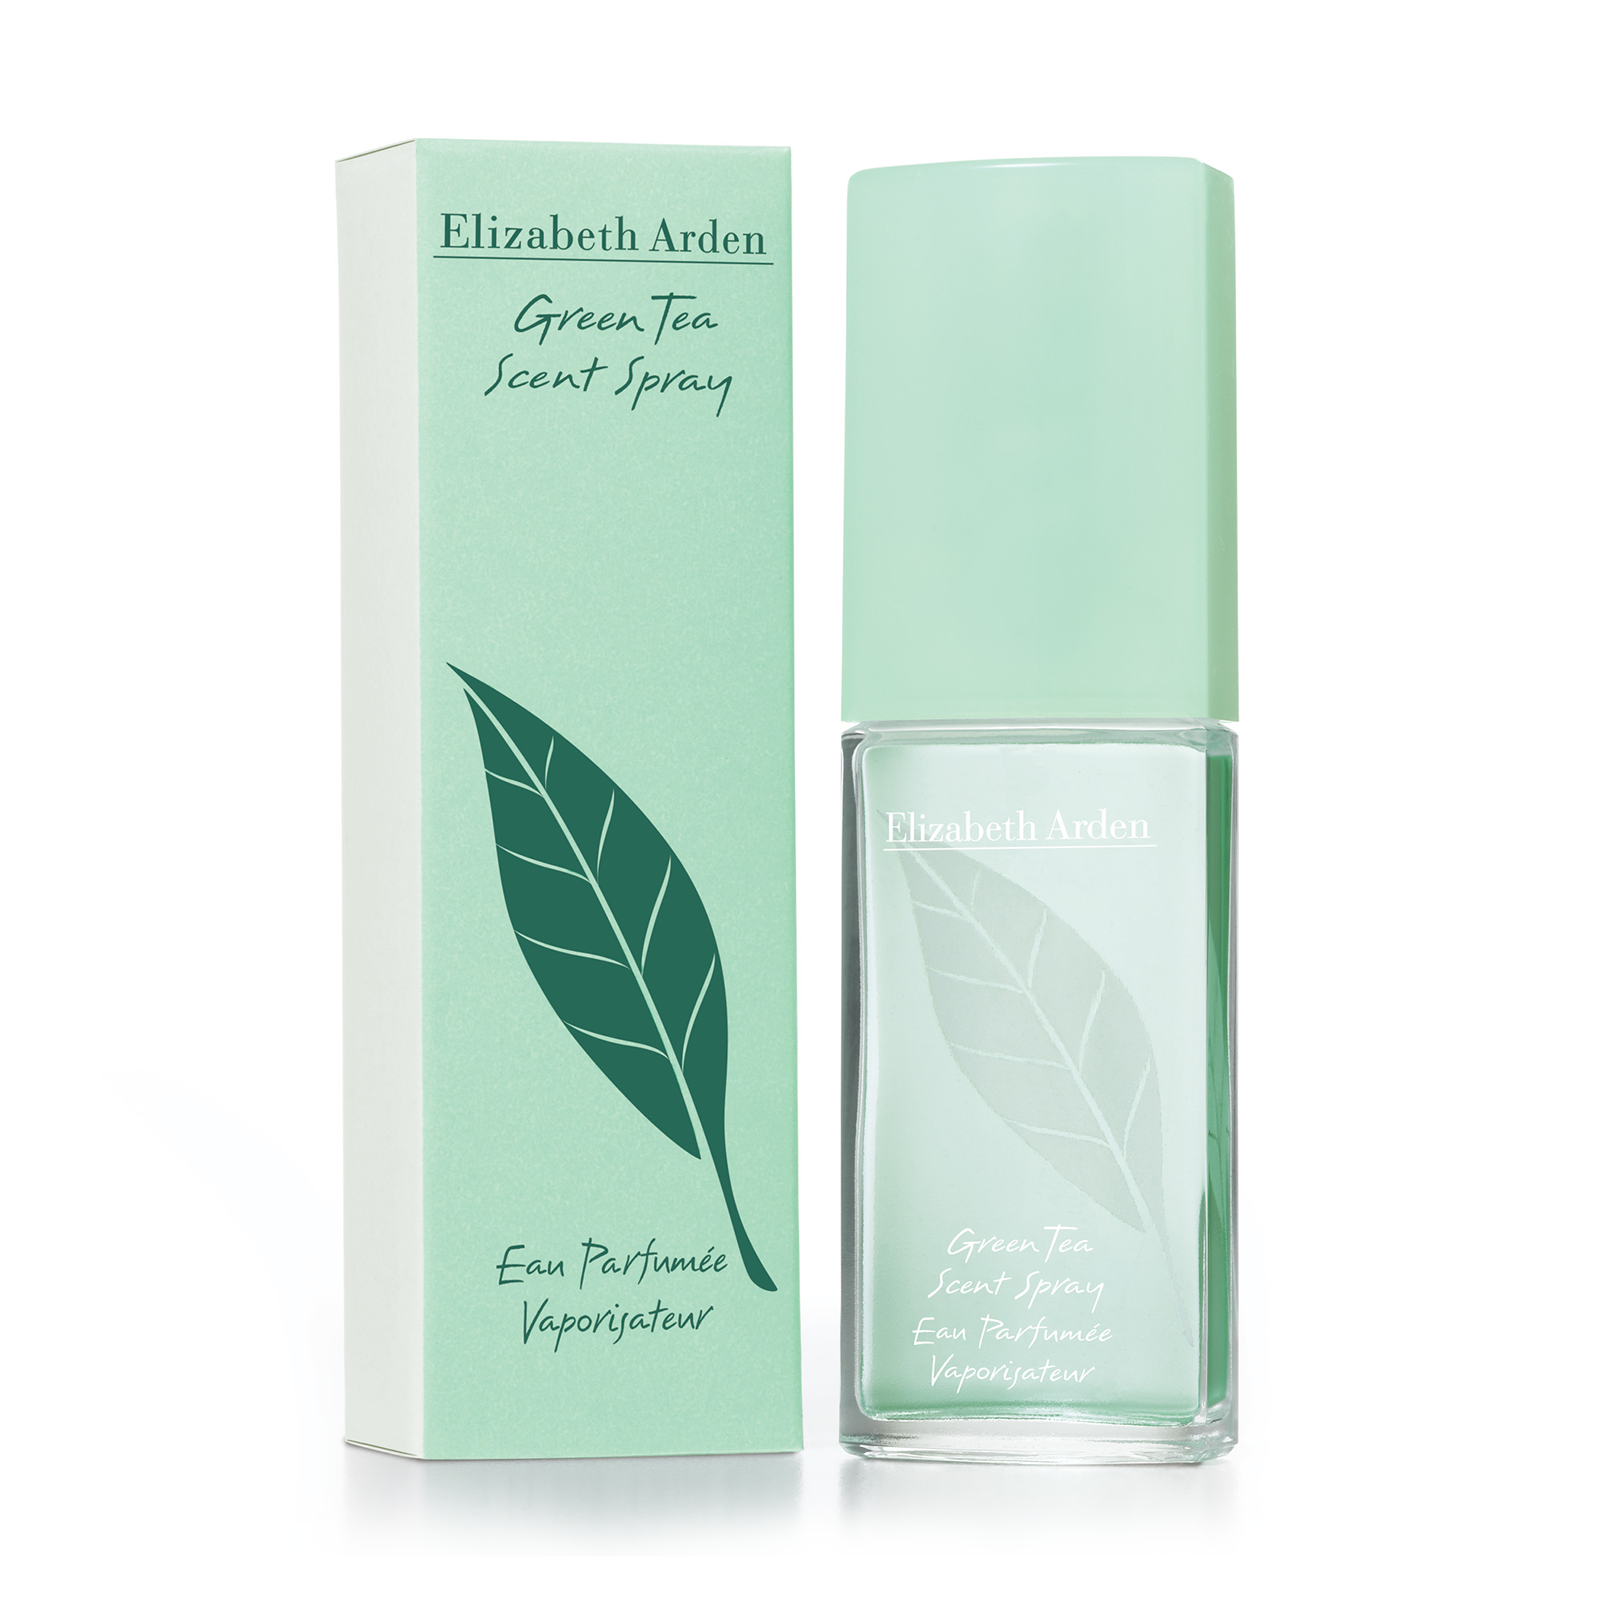 ELIZABETH ARDEN GREEN TEA WOMEN EDP 100ML